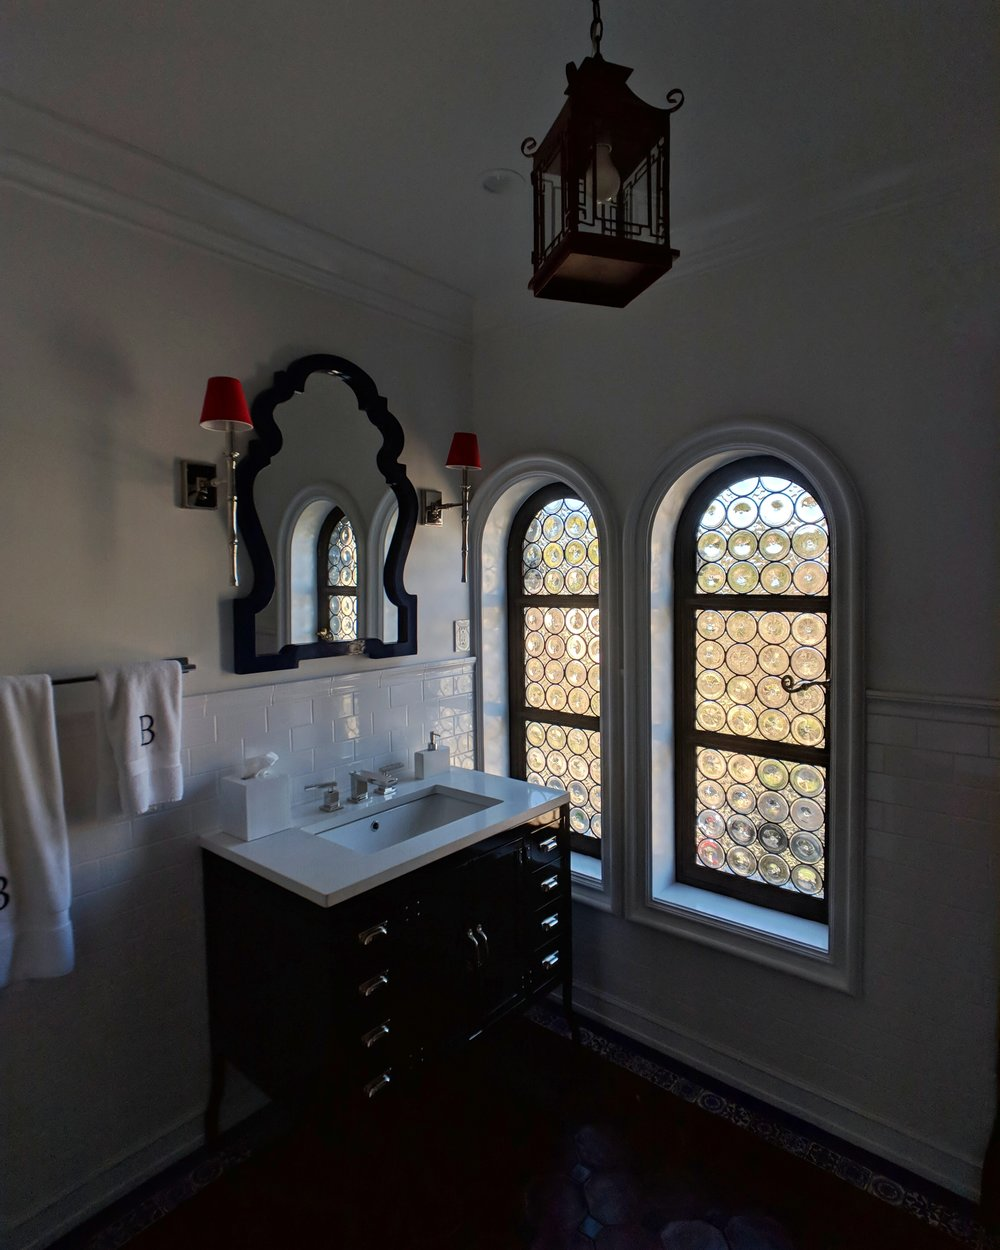 stained glass leaded glass design legacy glass studios menlo park bay area california custom design rondels spanish influence interior design tile privacy glass black bathroom arched vanity.jpeg